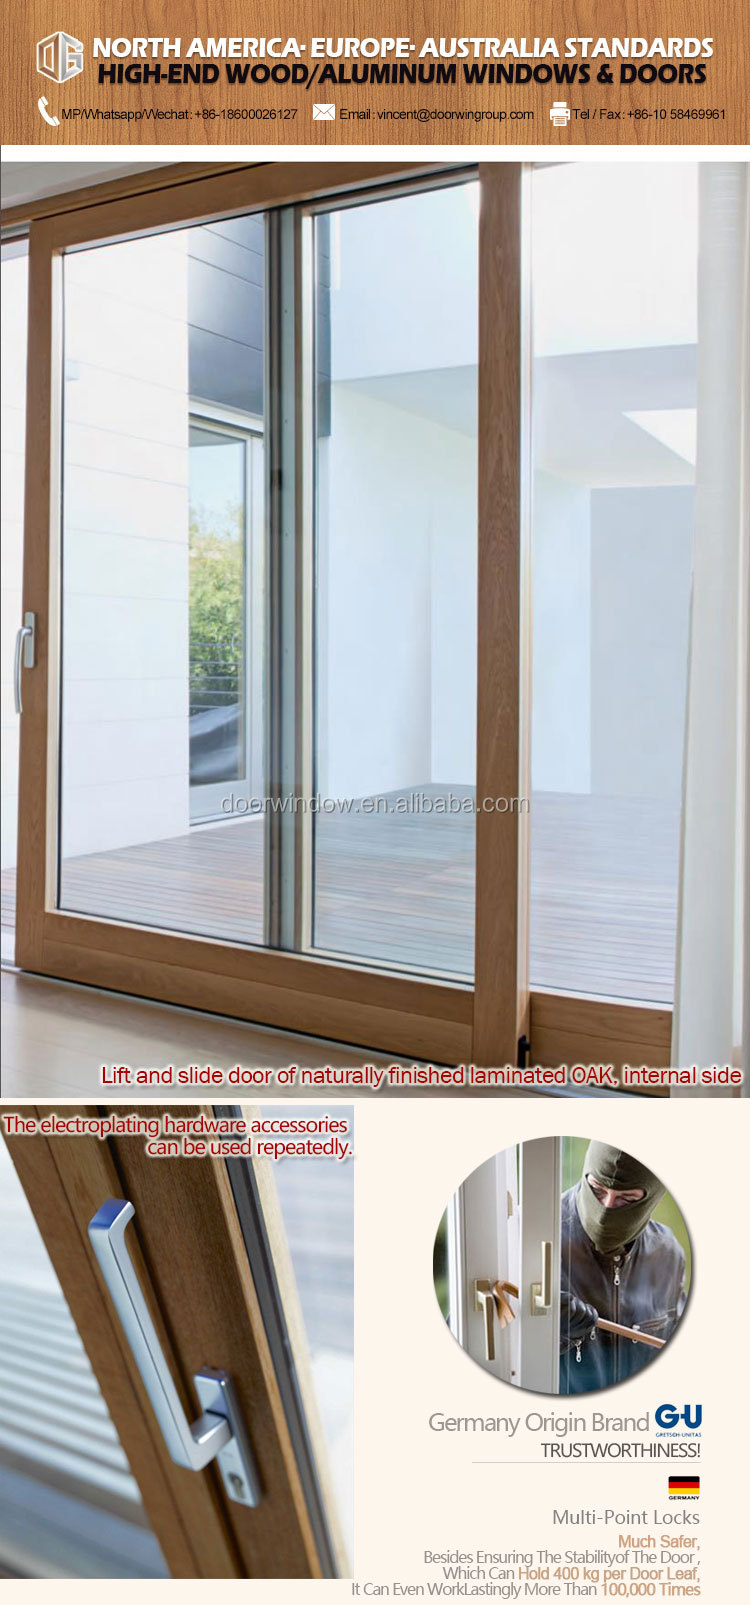 Luxury partition wall sliding doors lift and door latest design aluminium